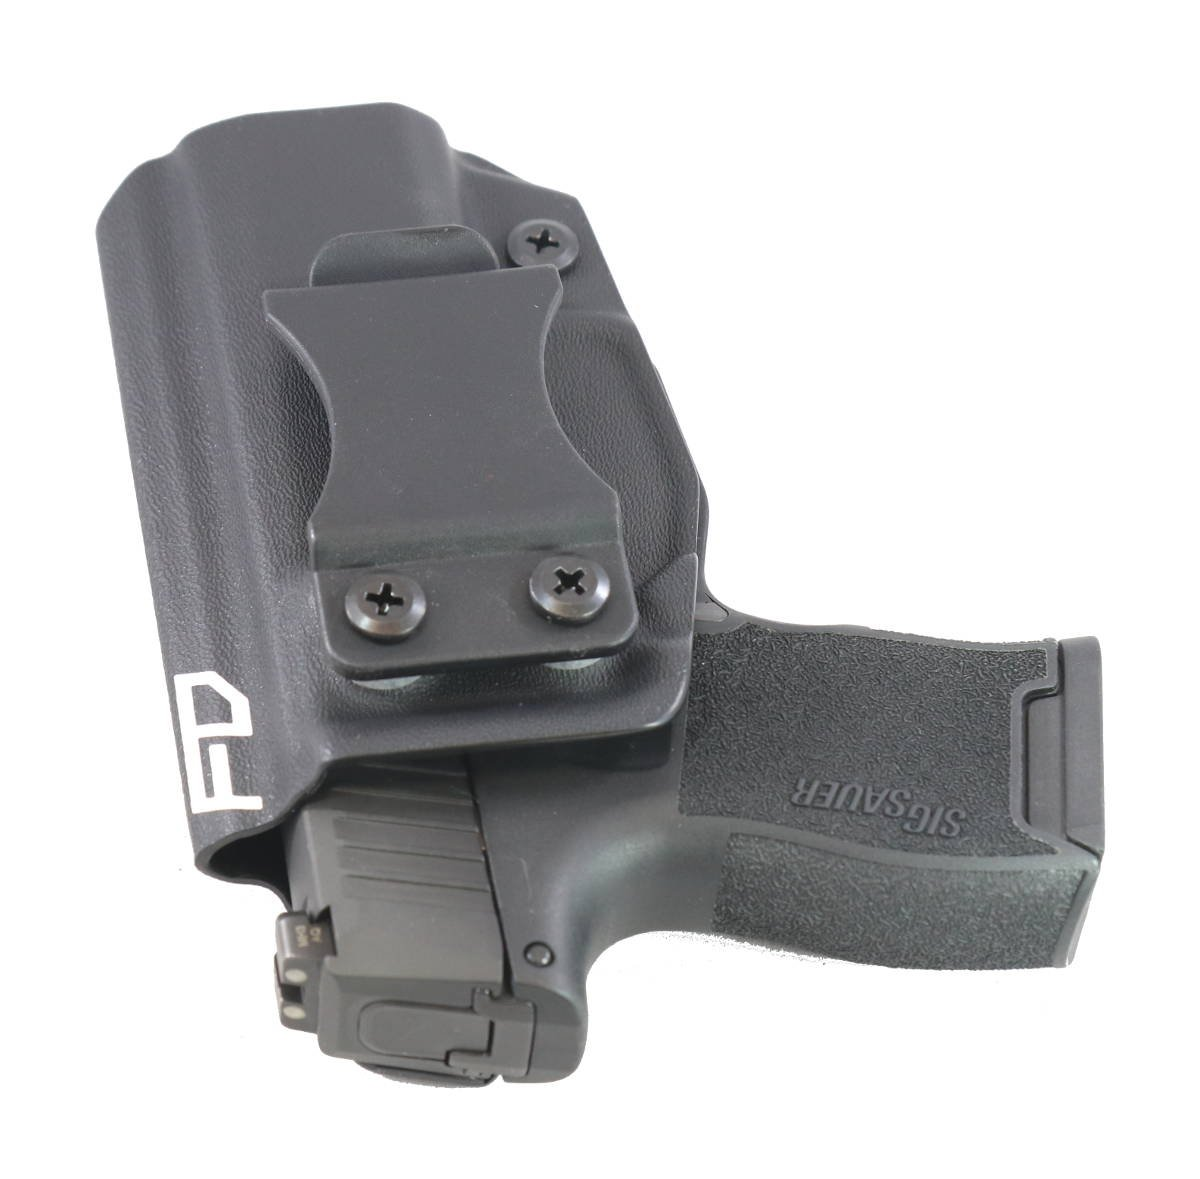 Amazon.com : Fierce Defender IWB Kydex Holster Sig P365 Winter Warrior Series -MADE IN USA- (Black) : Sports & Outdoors